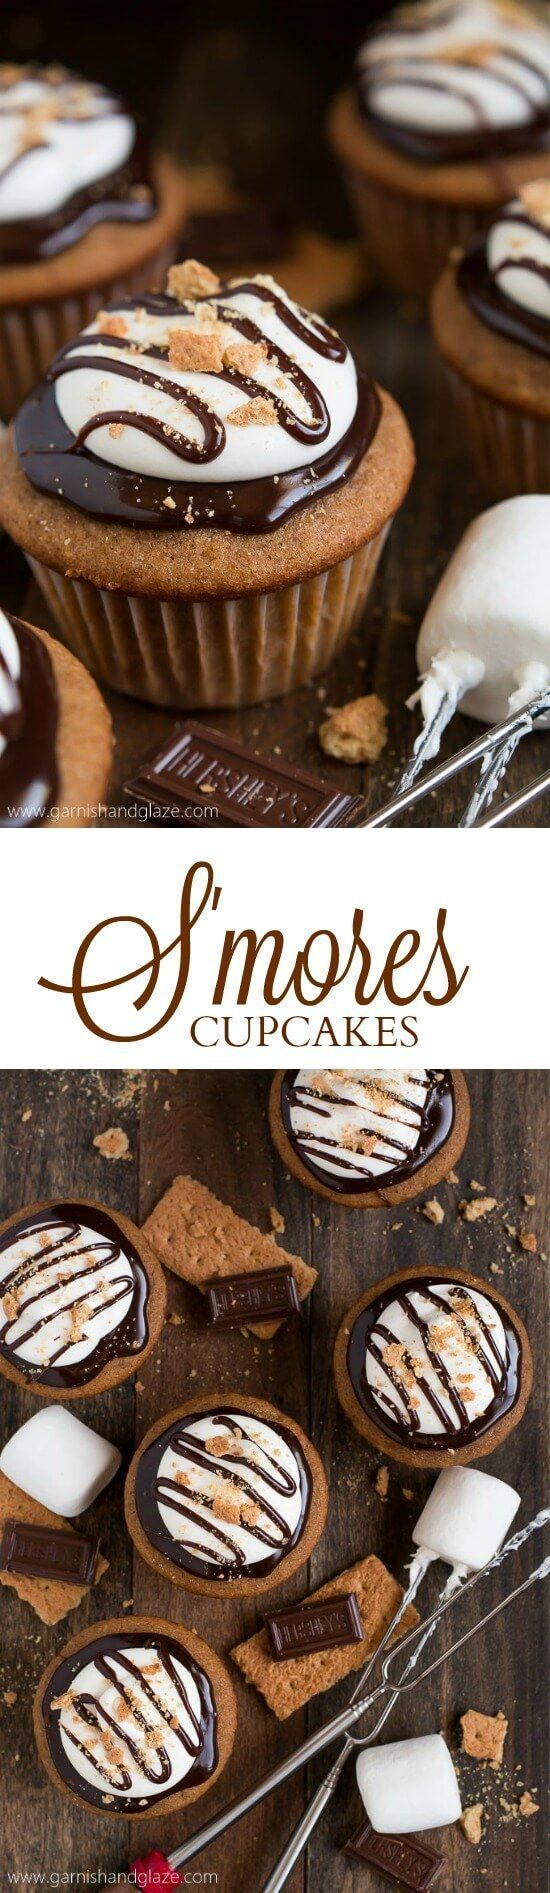 Celebrate National S'mores Day with S'mores Cupcakes that have milk chocolate ganache and fluffy marshmallow frosting on top of a graham cracker cake.